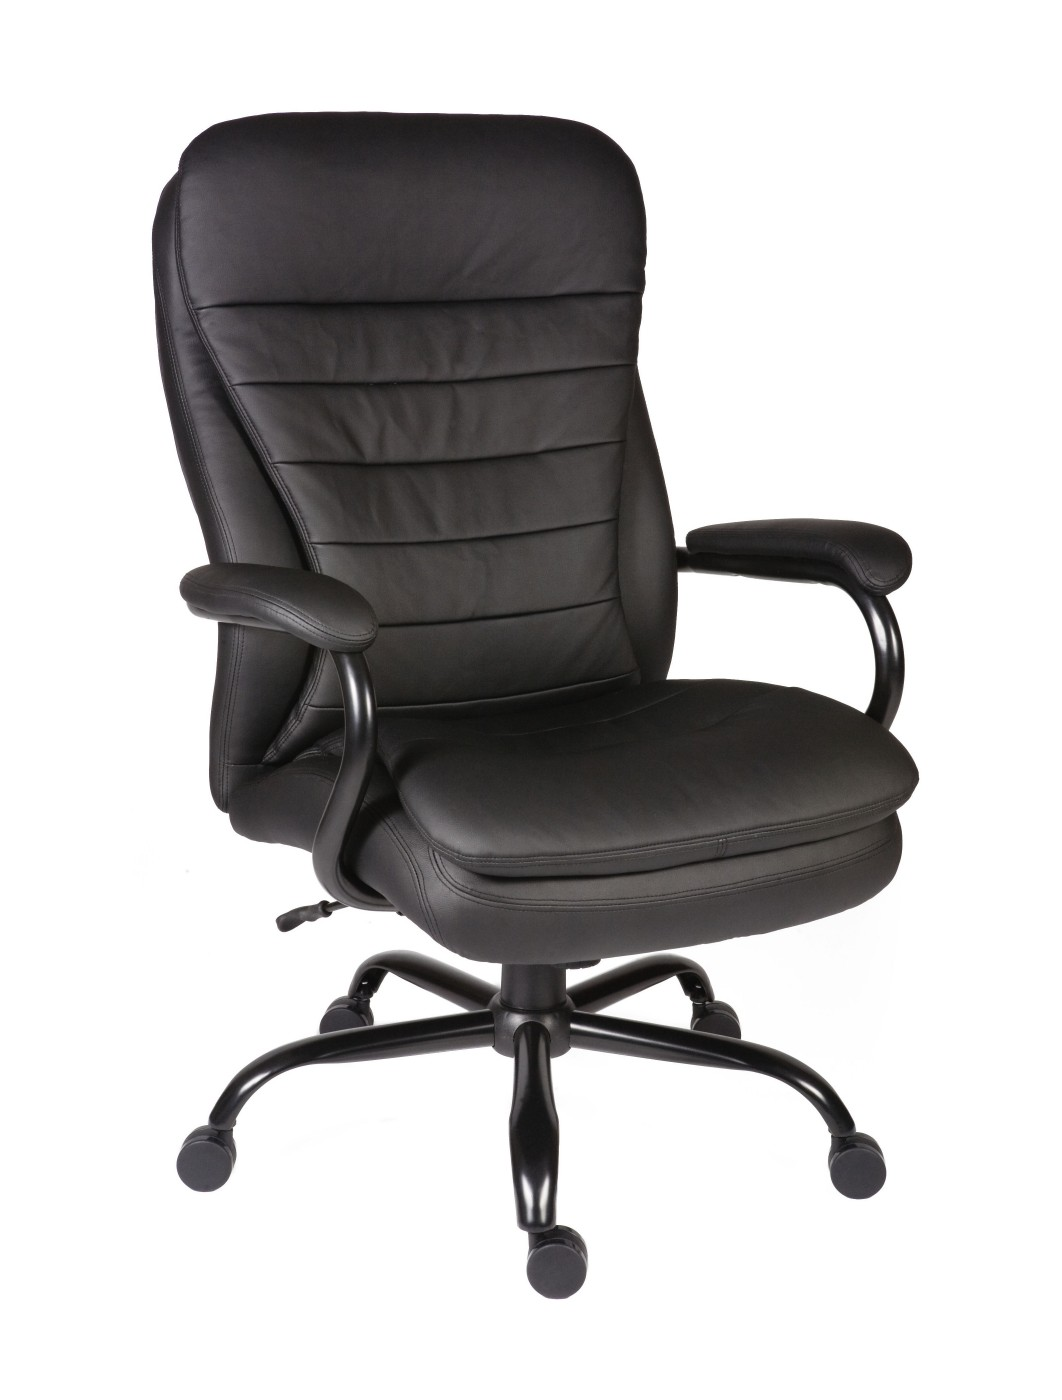 office chairs computer chairs goliath b991 121 office. Black Bedroom Furniture Sets. Home Design Ideas